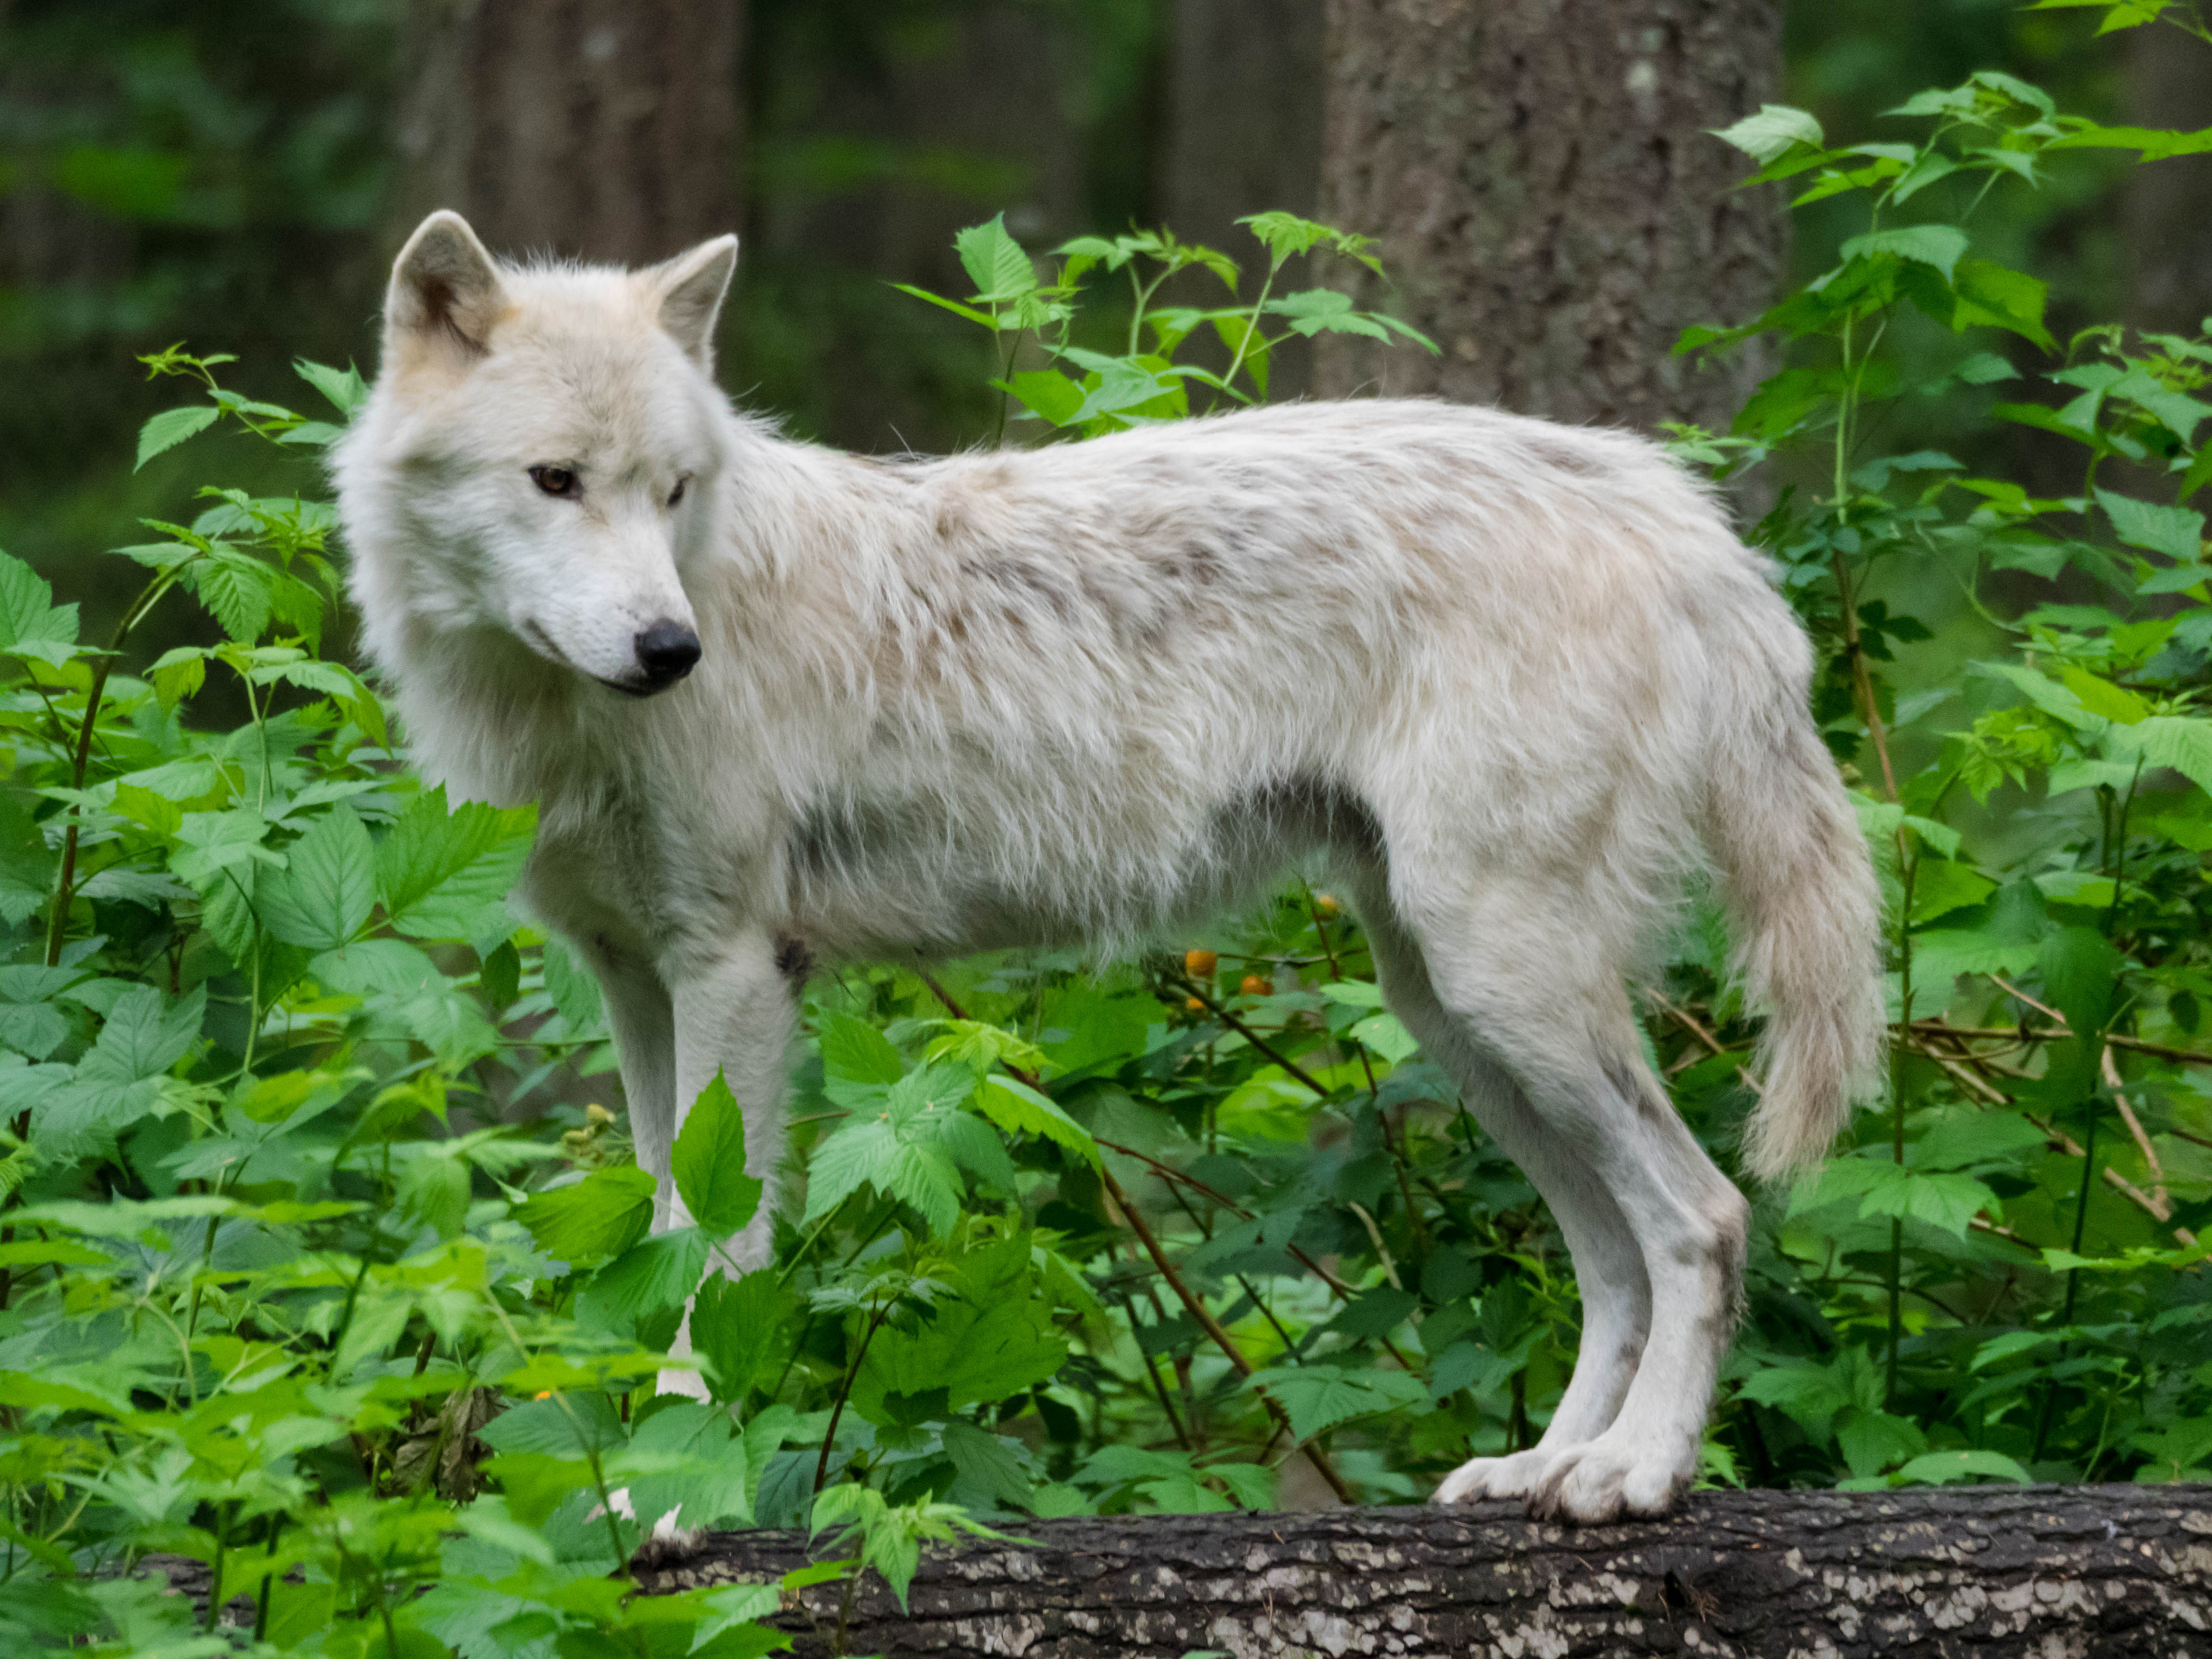 77828 download wallpaper Animals, Wolf, Beast, Animal, Wildlife screensavers and pictures for free